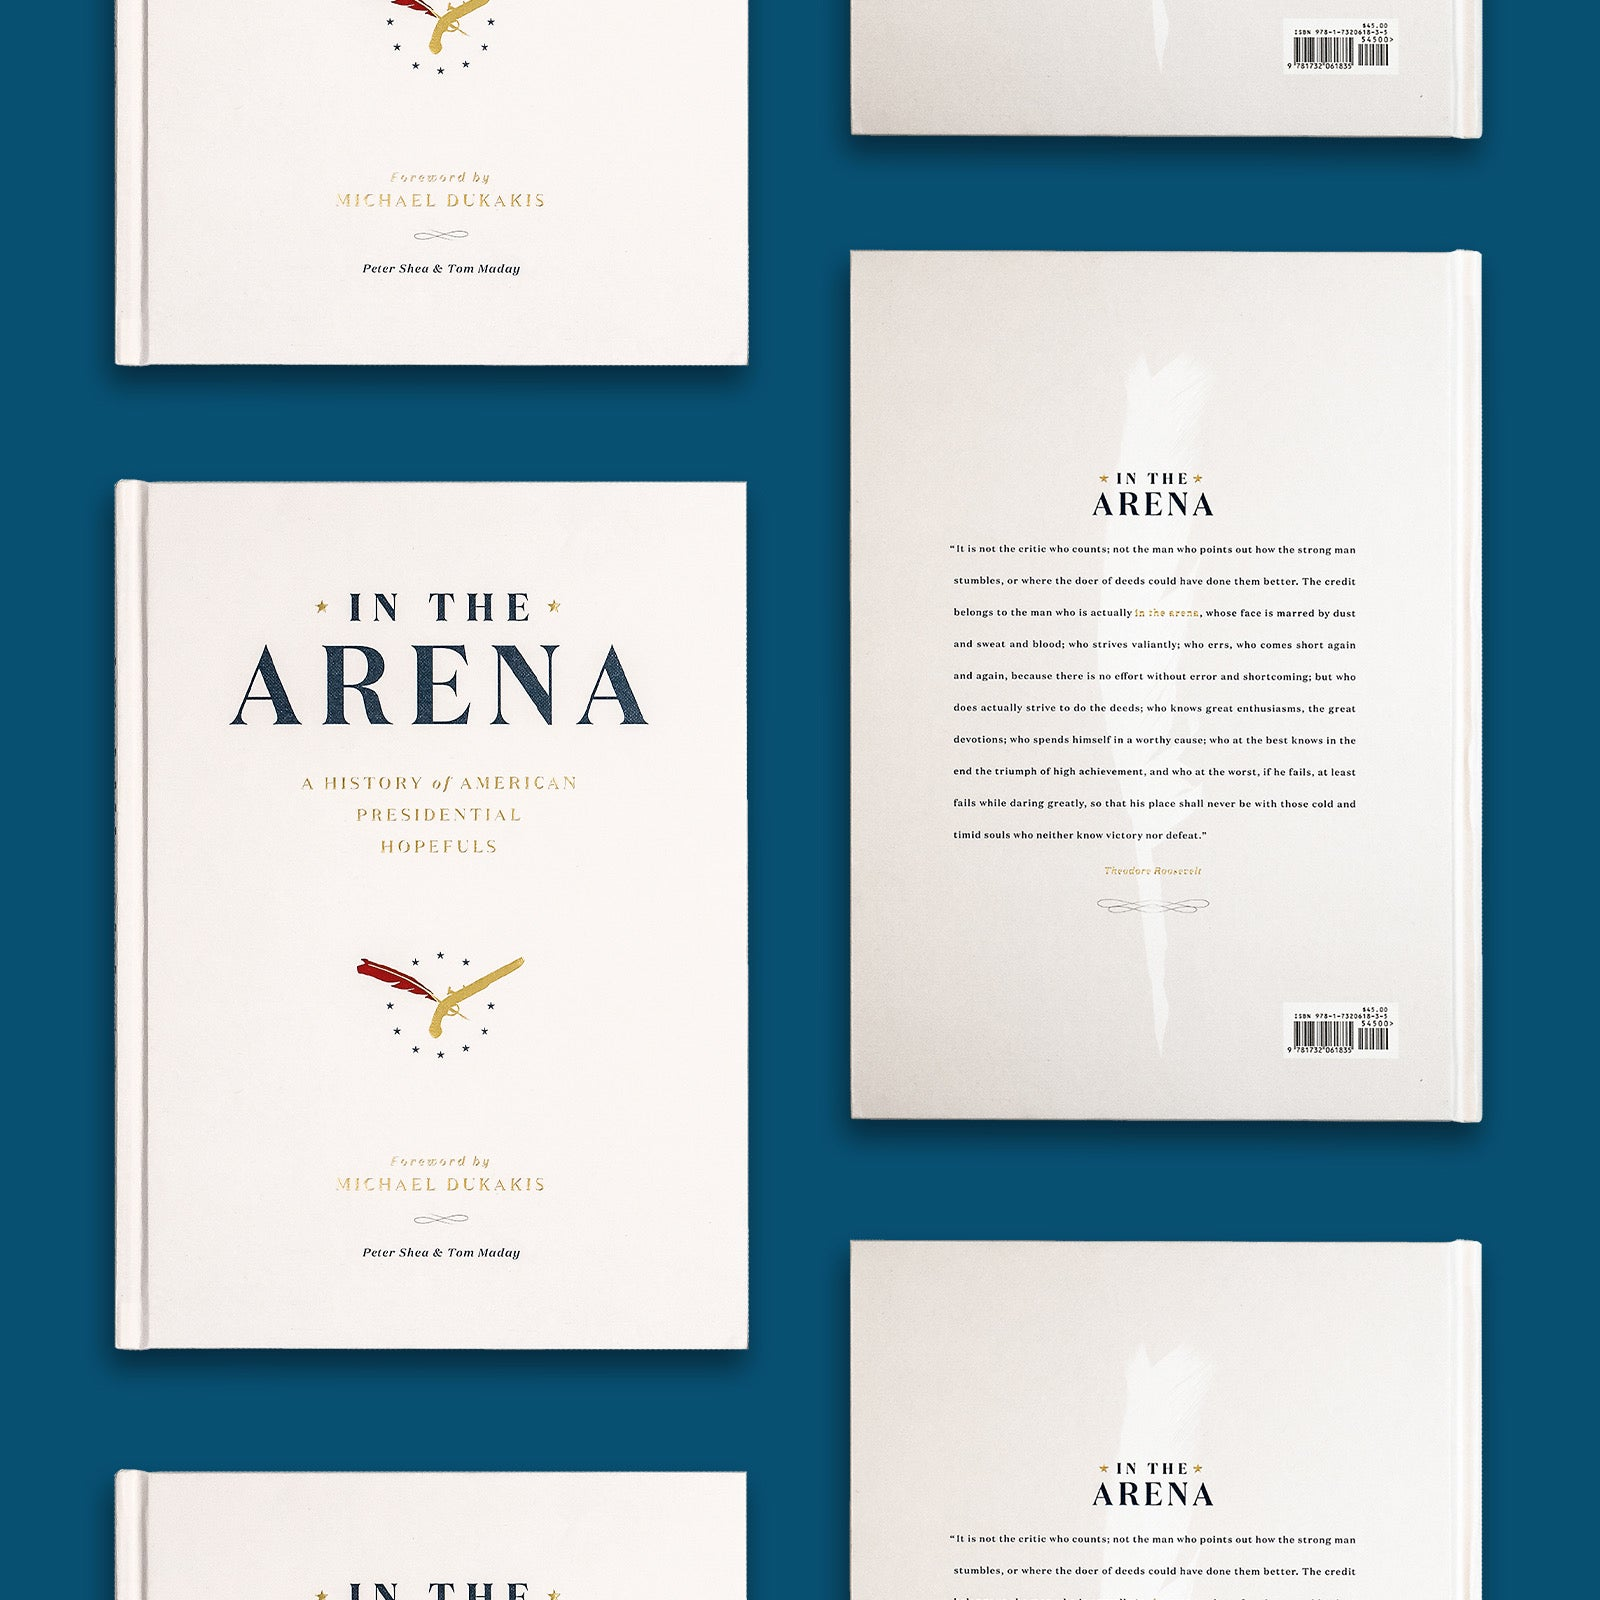 In the Arena, Trope Publishing Co